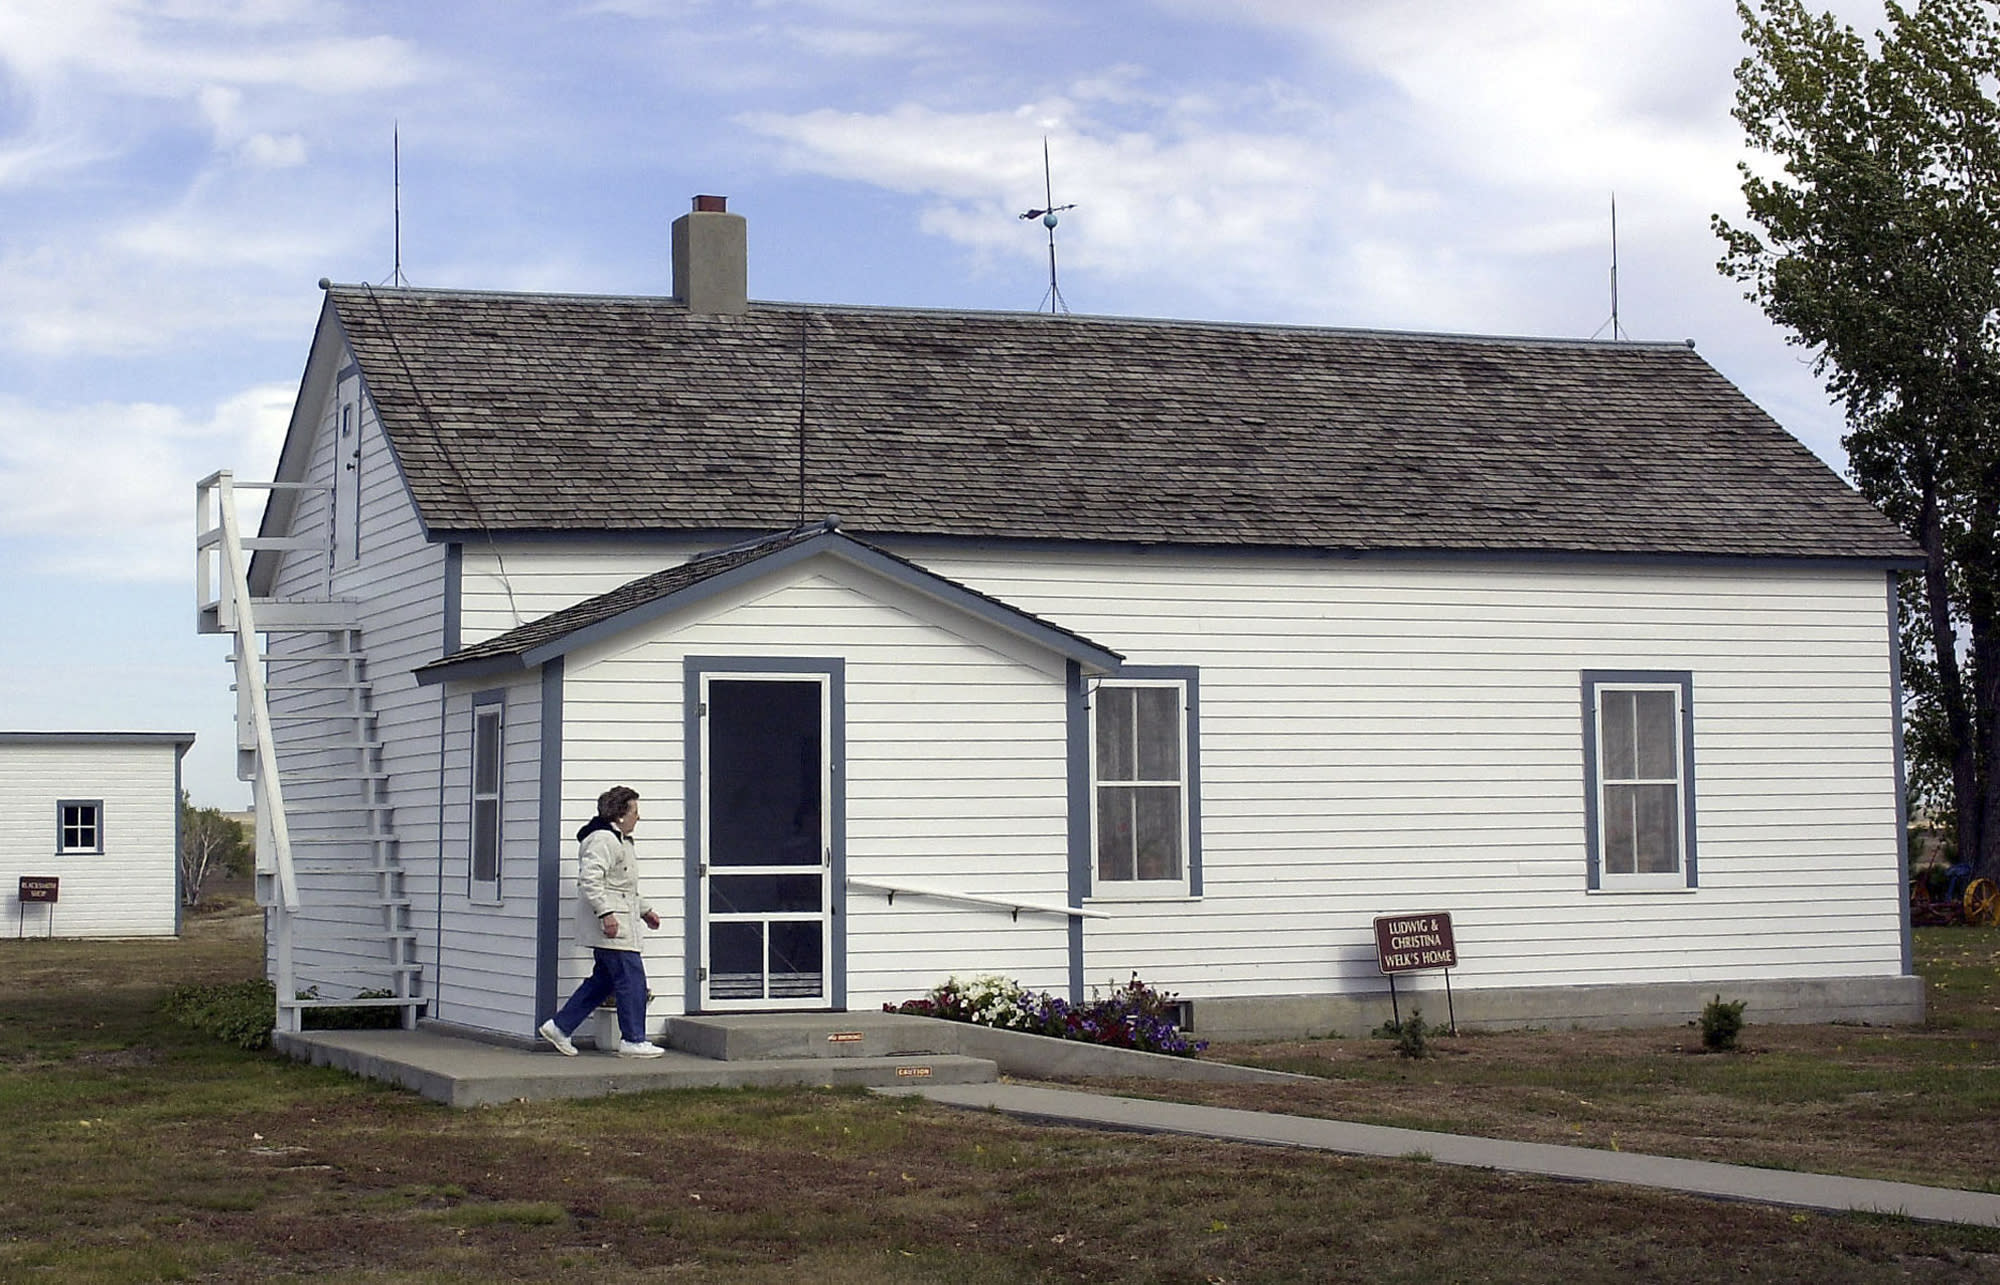 North Dakota lawmakers split on costs for Lawrence Welk home